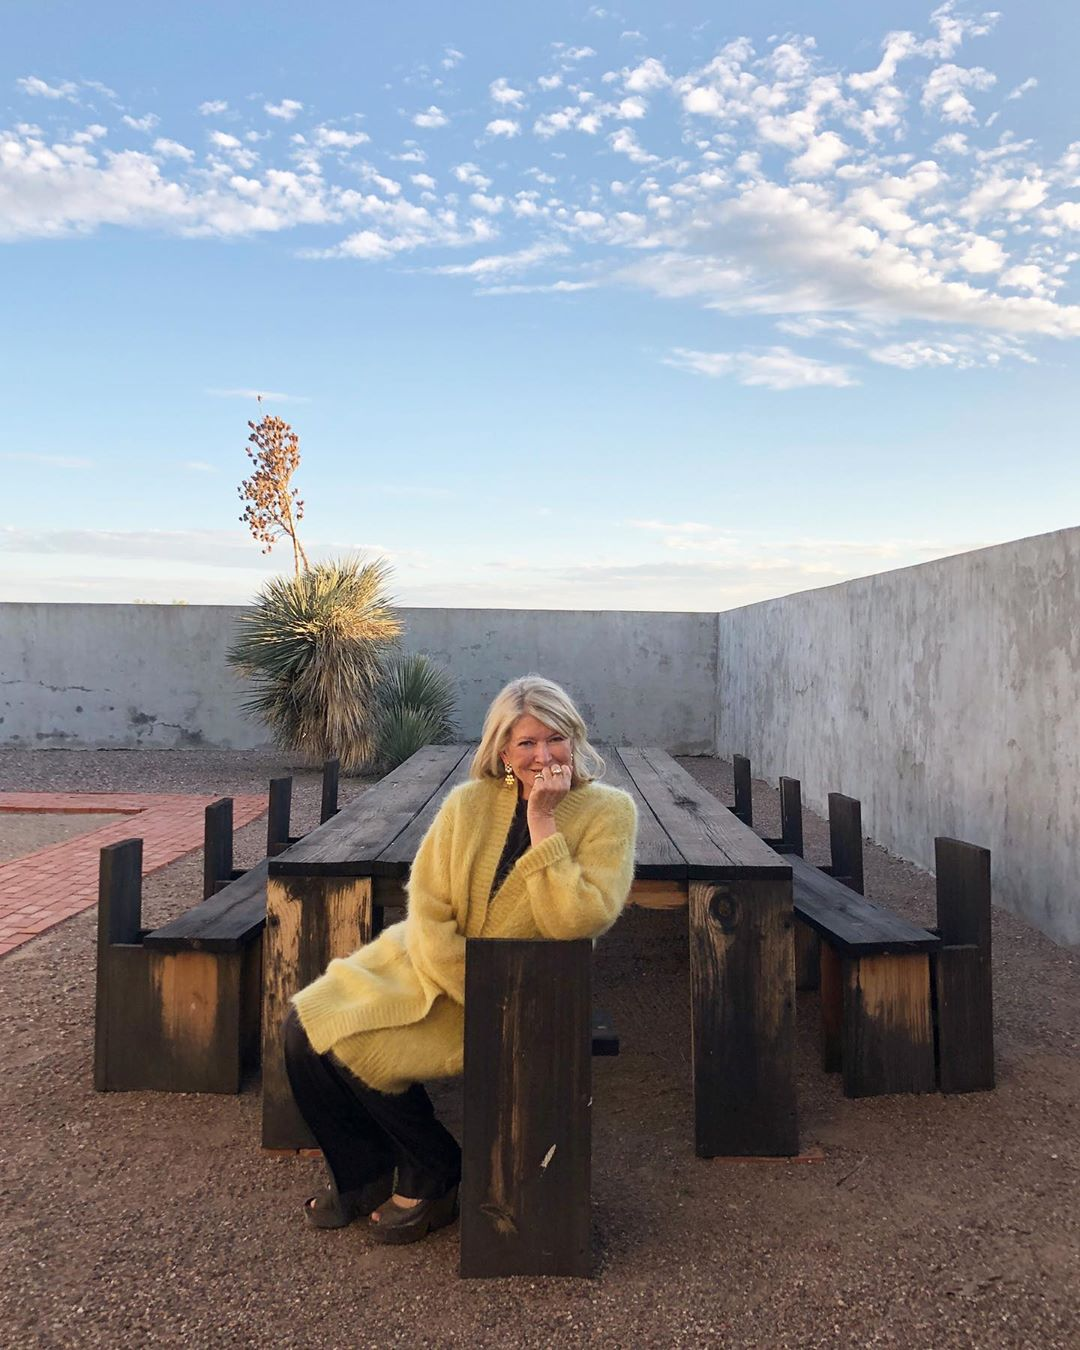 Martha Goes to Marfa: Her Trip to the Iconic Art Destination